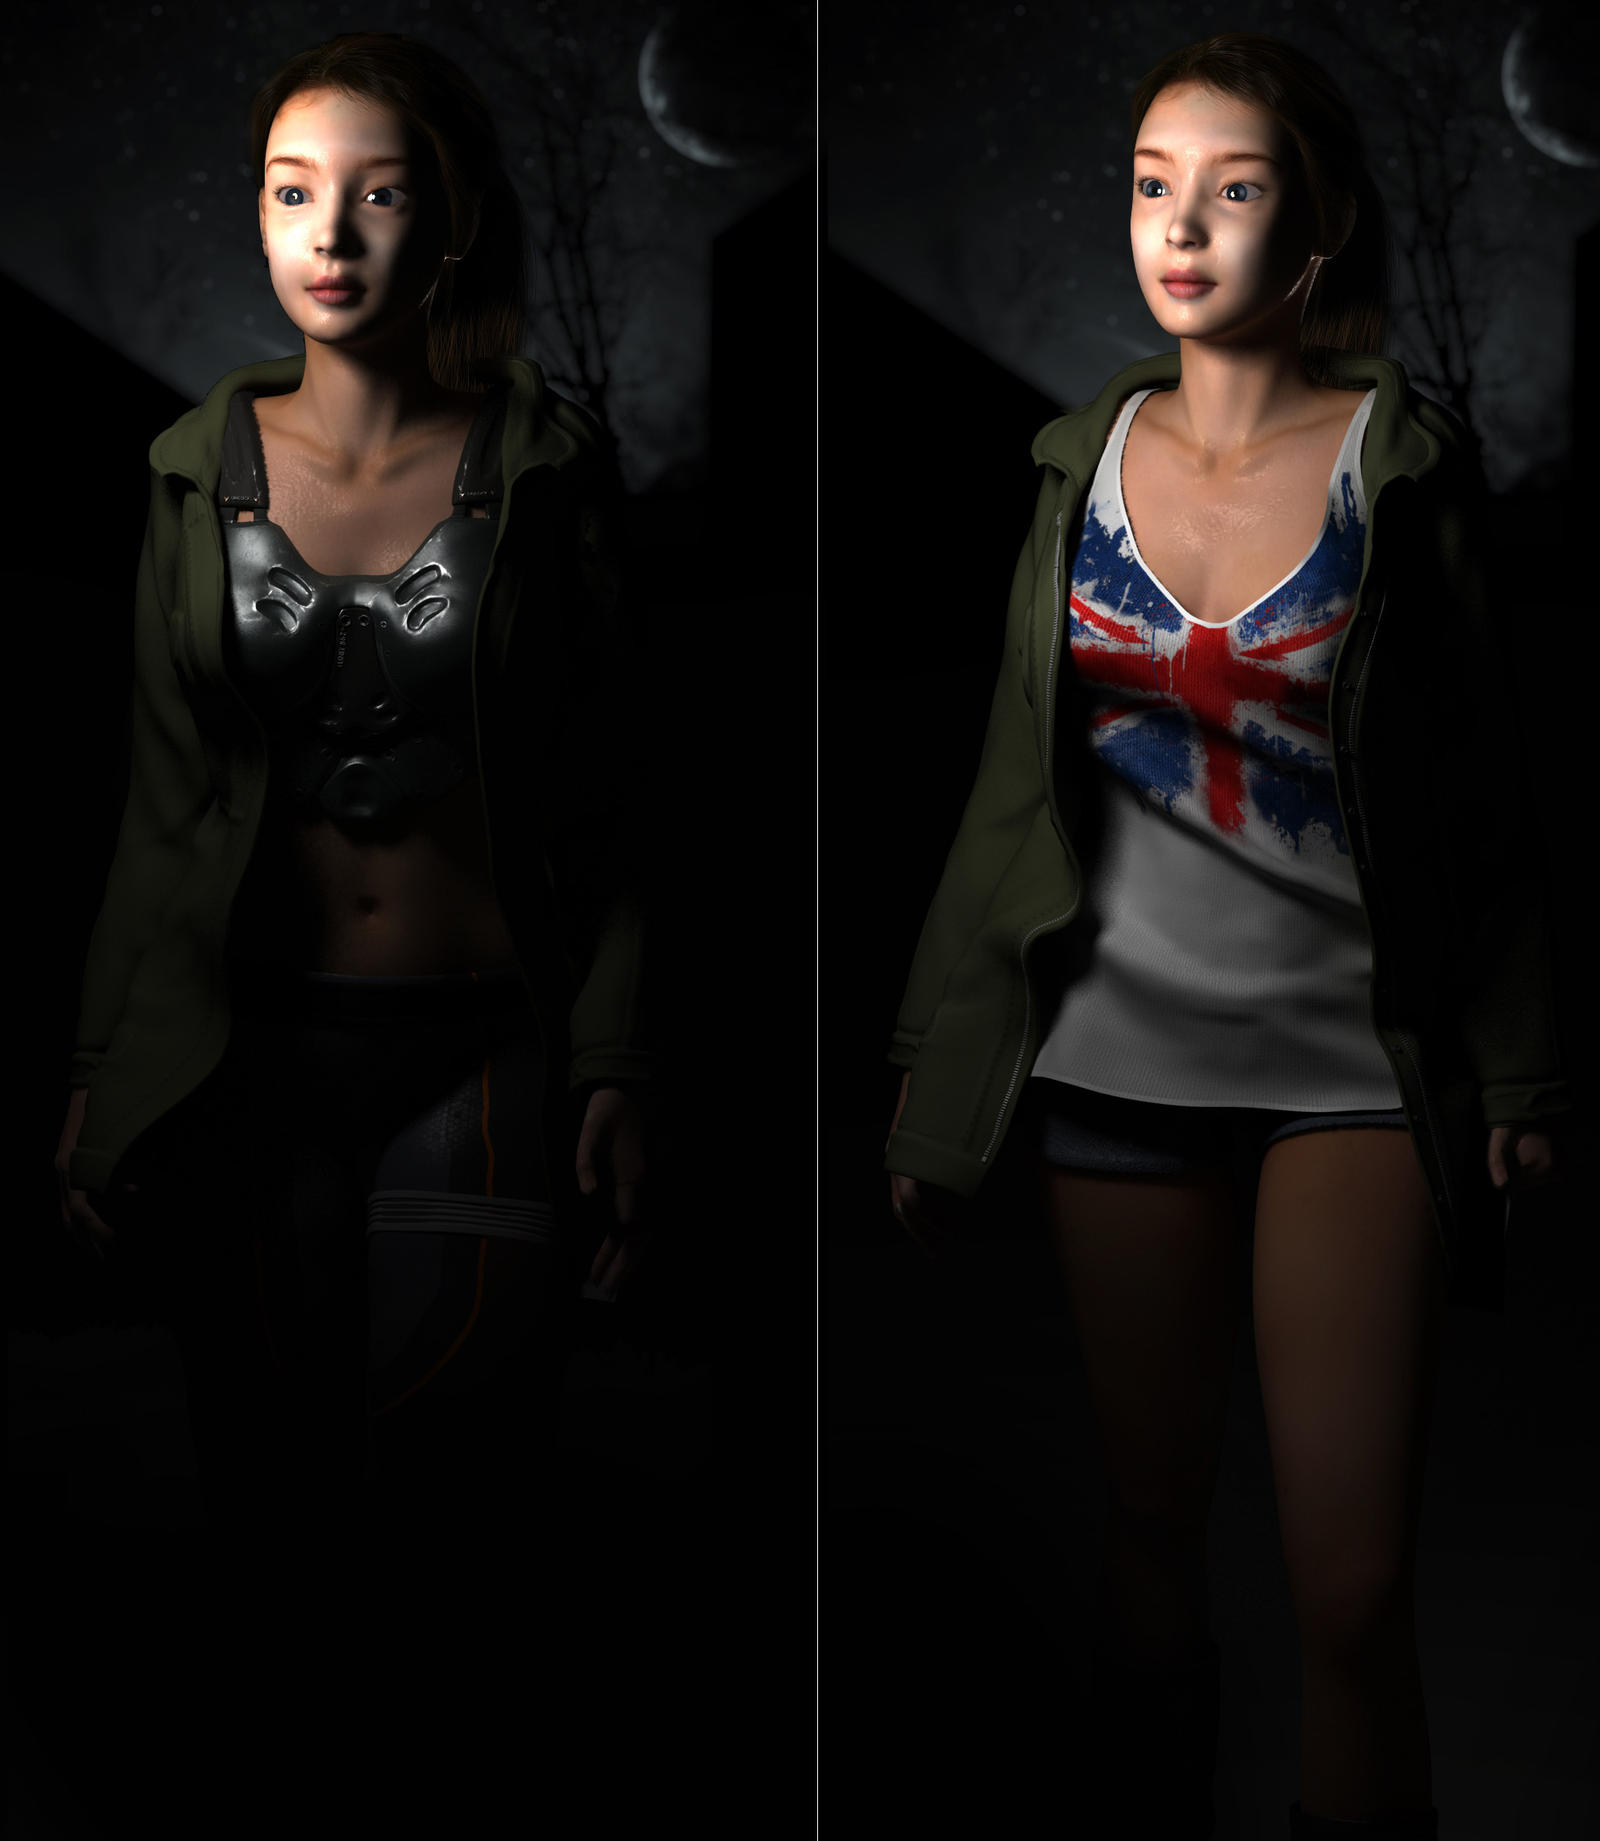 lisa_s_2_costumes_by_spartanx118-d6zky06.jpg